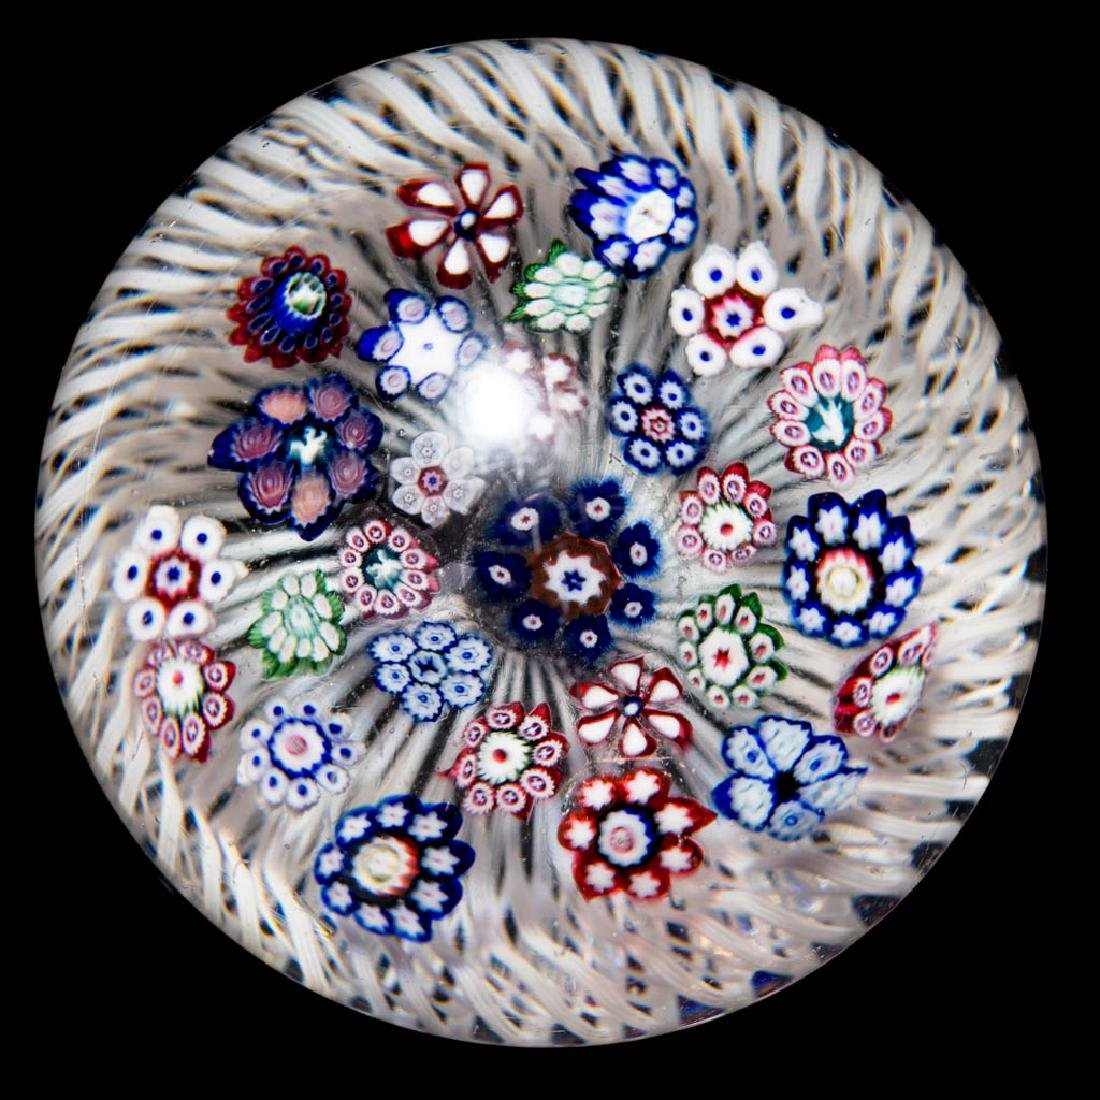 ANTIQUE BACCARAT MILLEFIORI AND SWIRLED BASKET